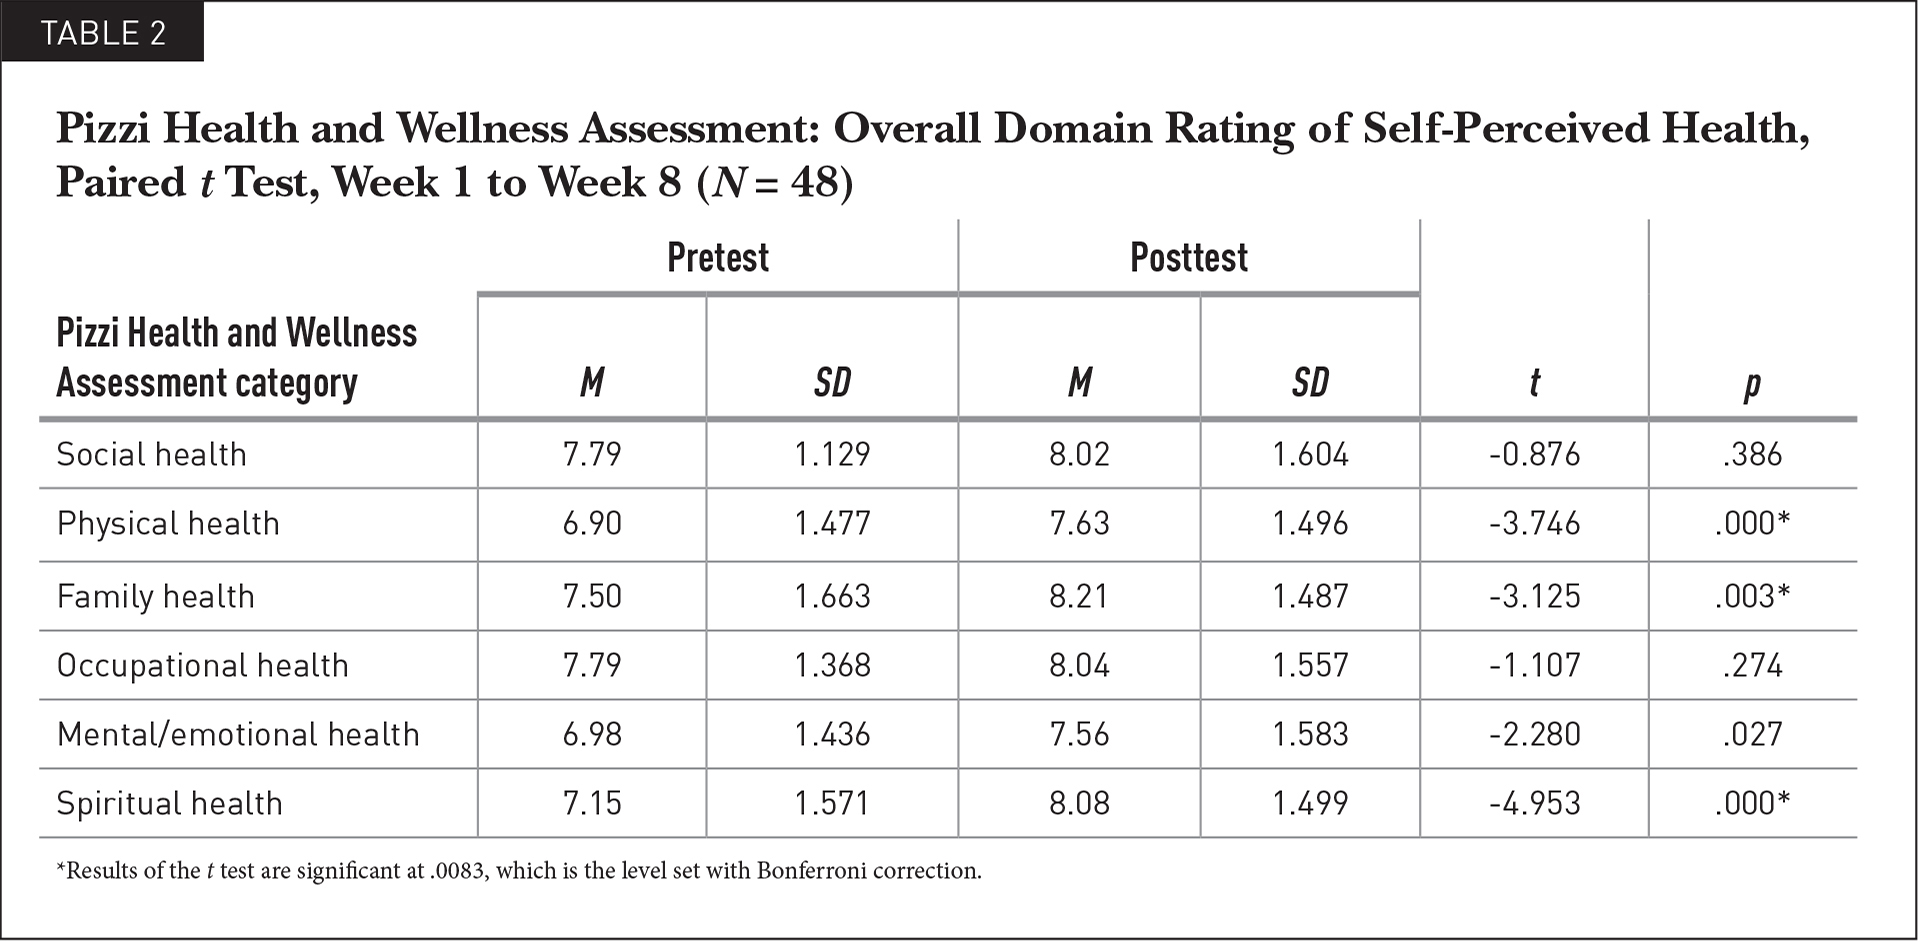 Pizzi Health and Wellness Assessment: Overall Domain Rating of Self-Perceived Health, Paired t Test, Week 1 to Week 8 (N = 48)